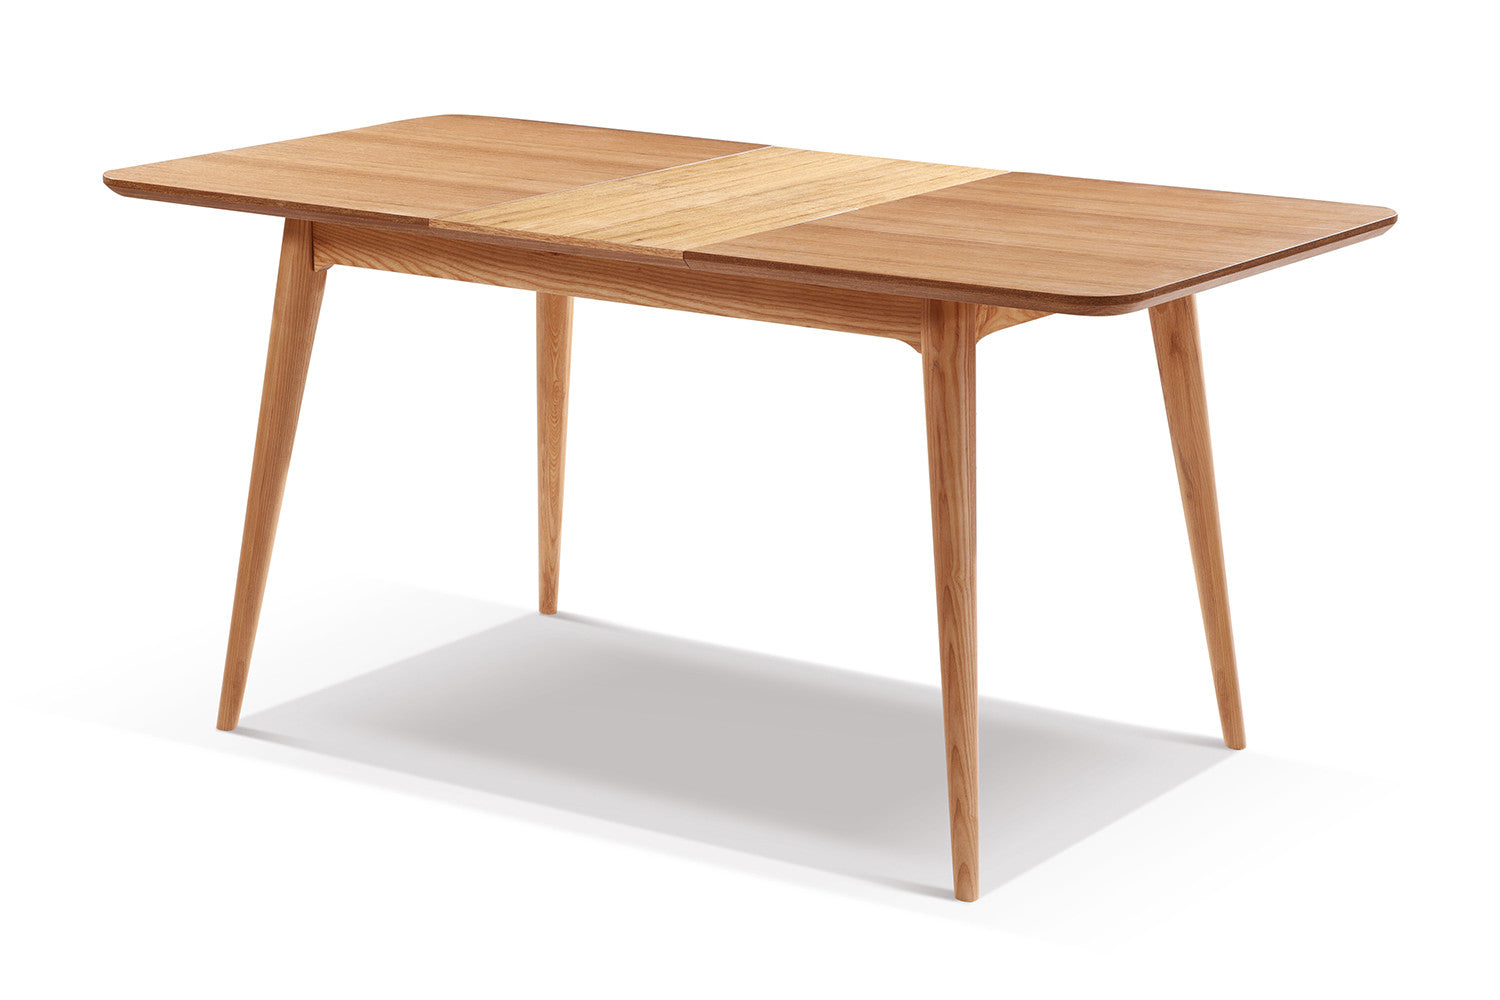 Table de salle manger extensible en bois adda dewarens for Table salle a manger retractable